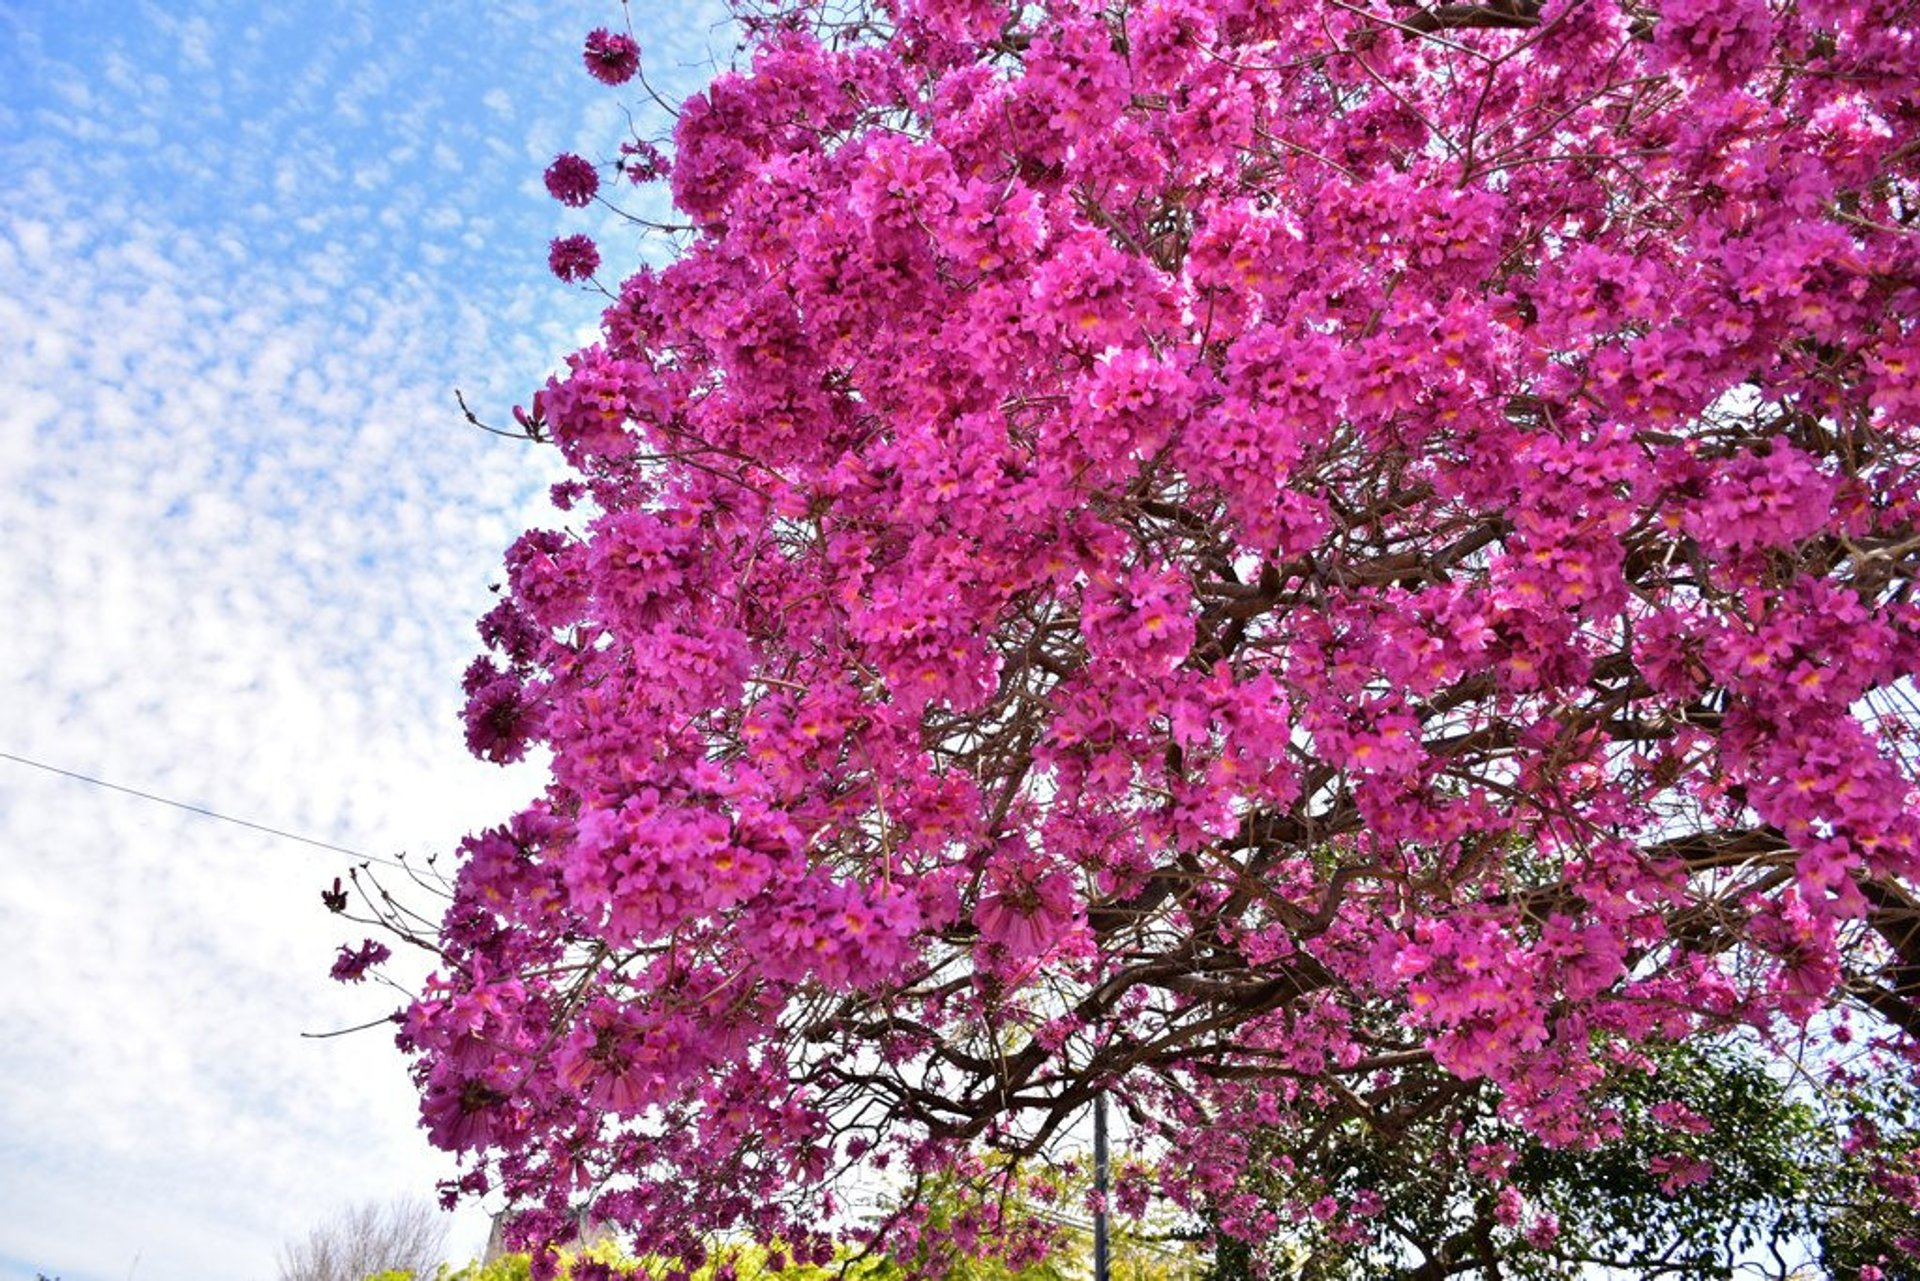 Lapacho Blooming in Buenos Aires 2020 - Best Time